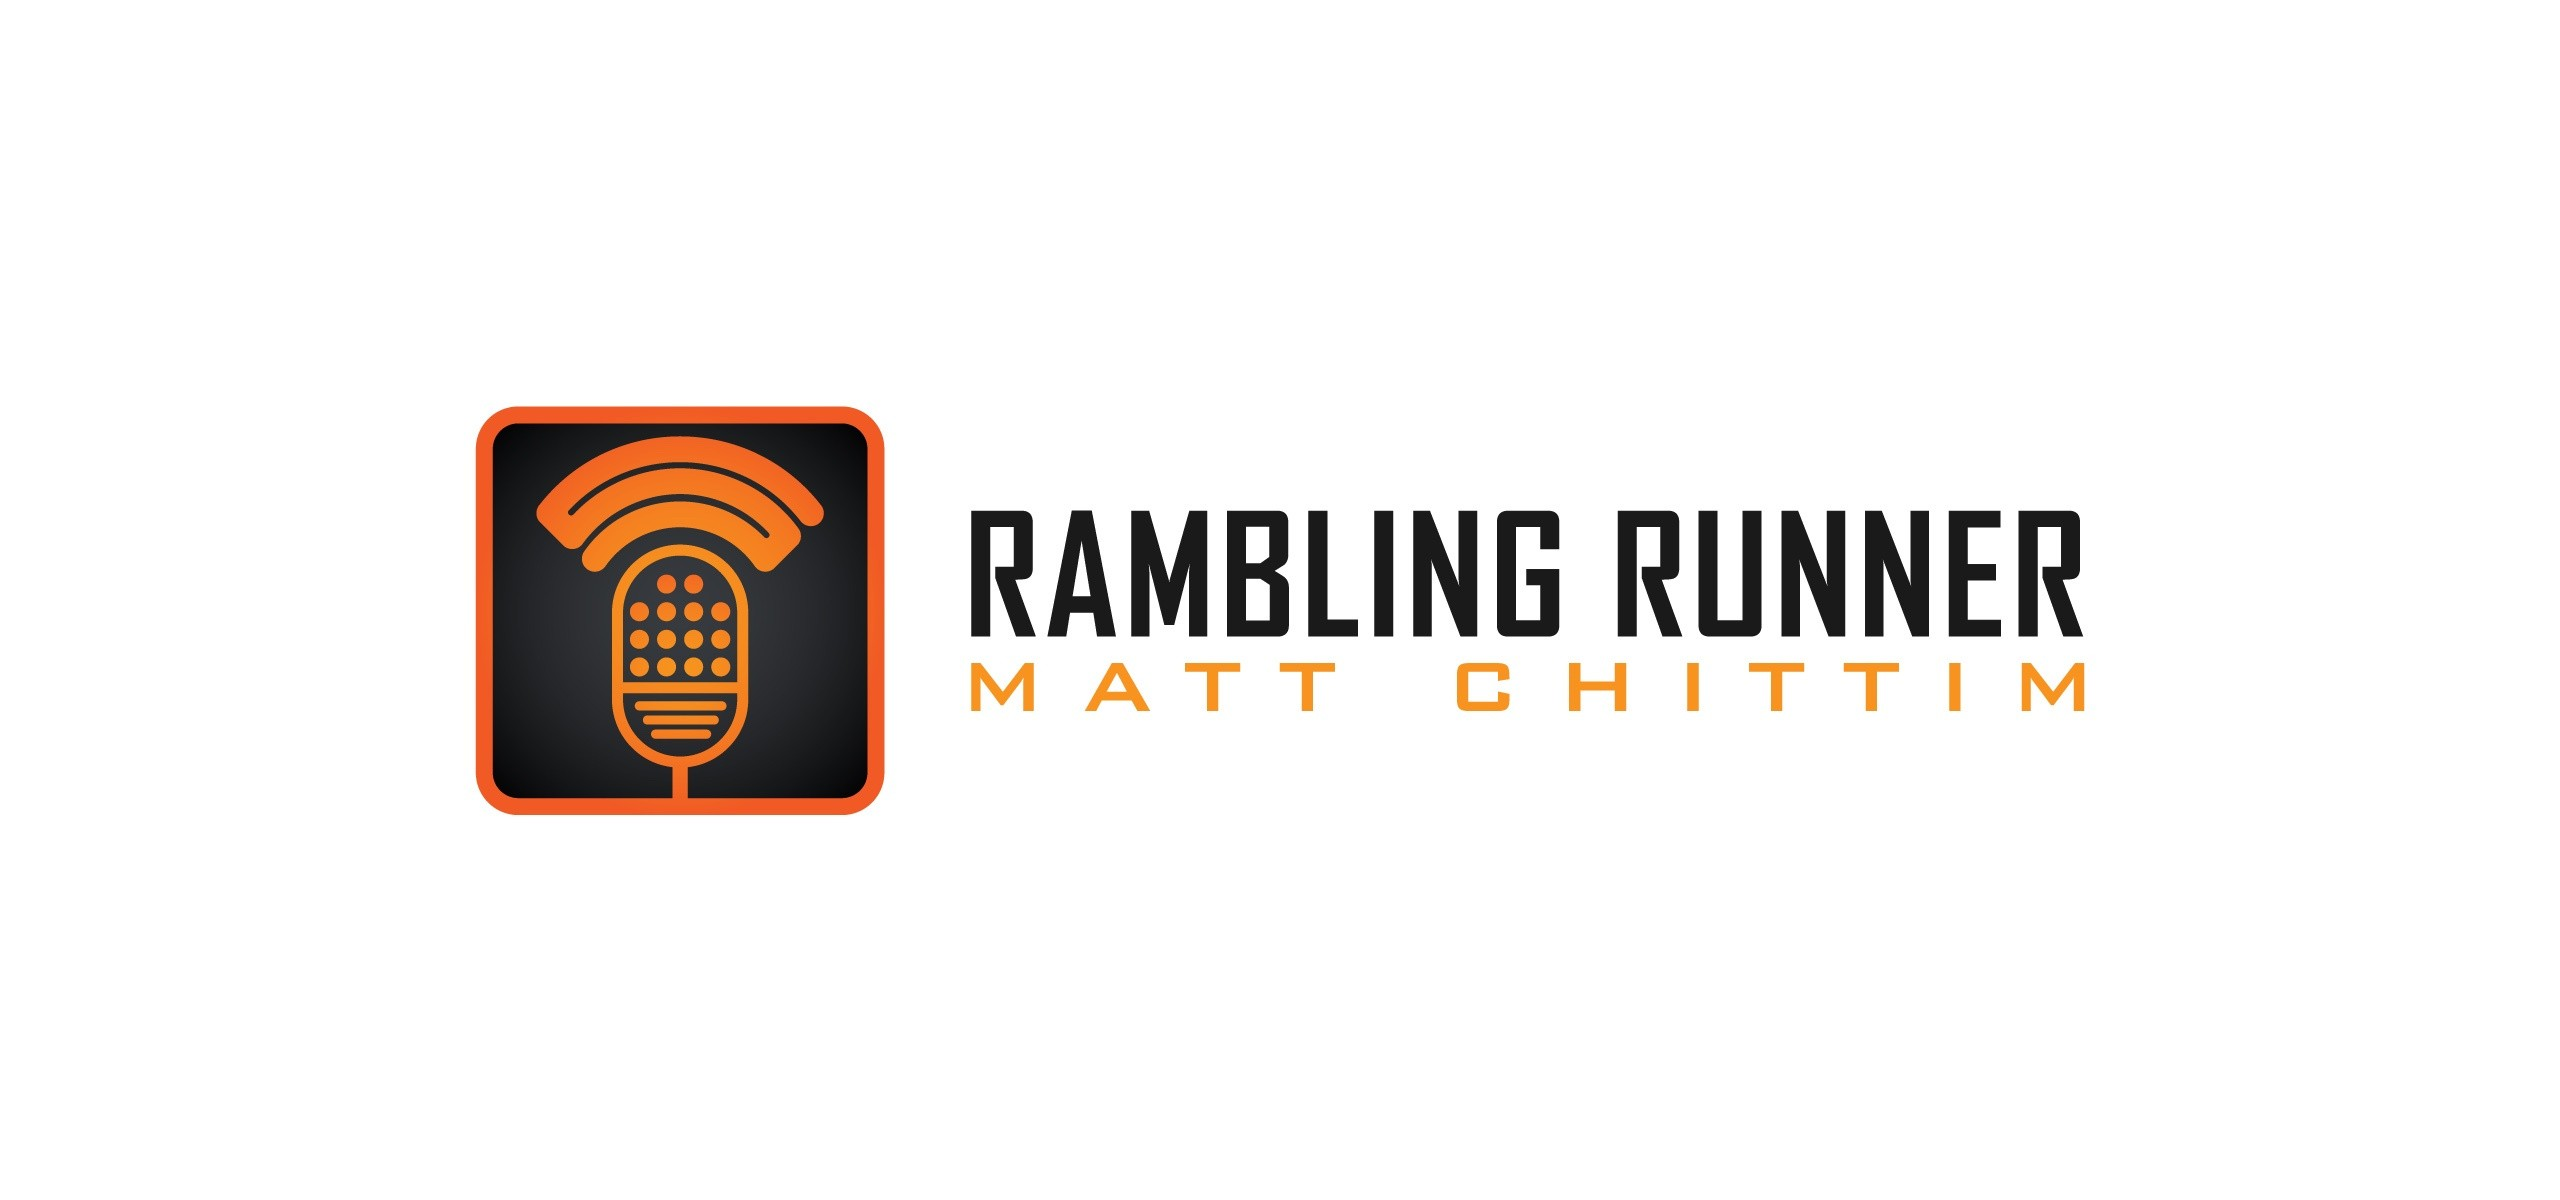 The Rambling Runner